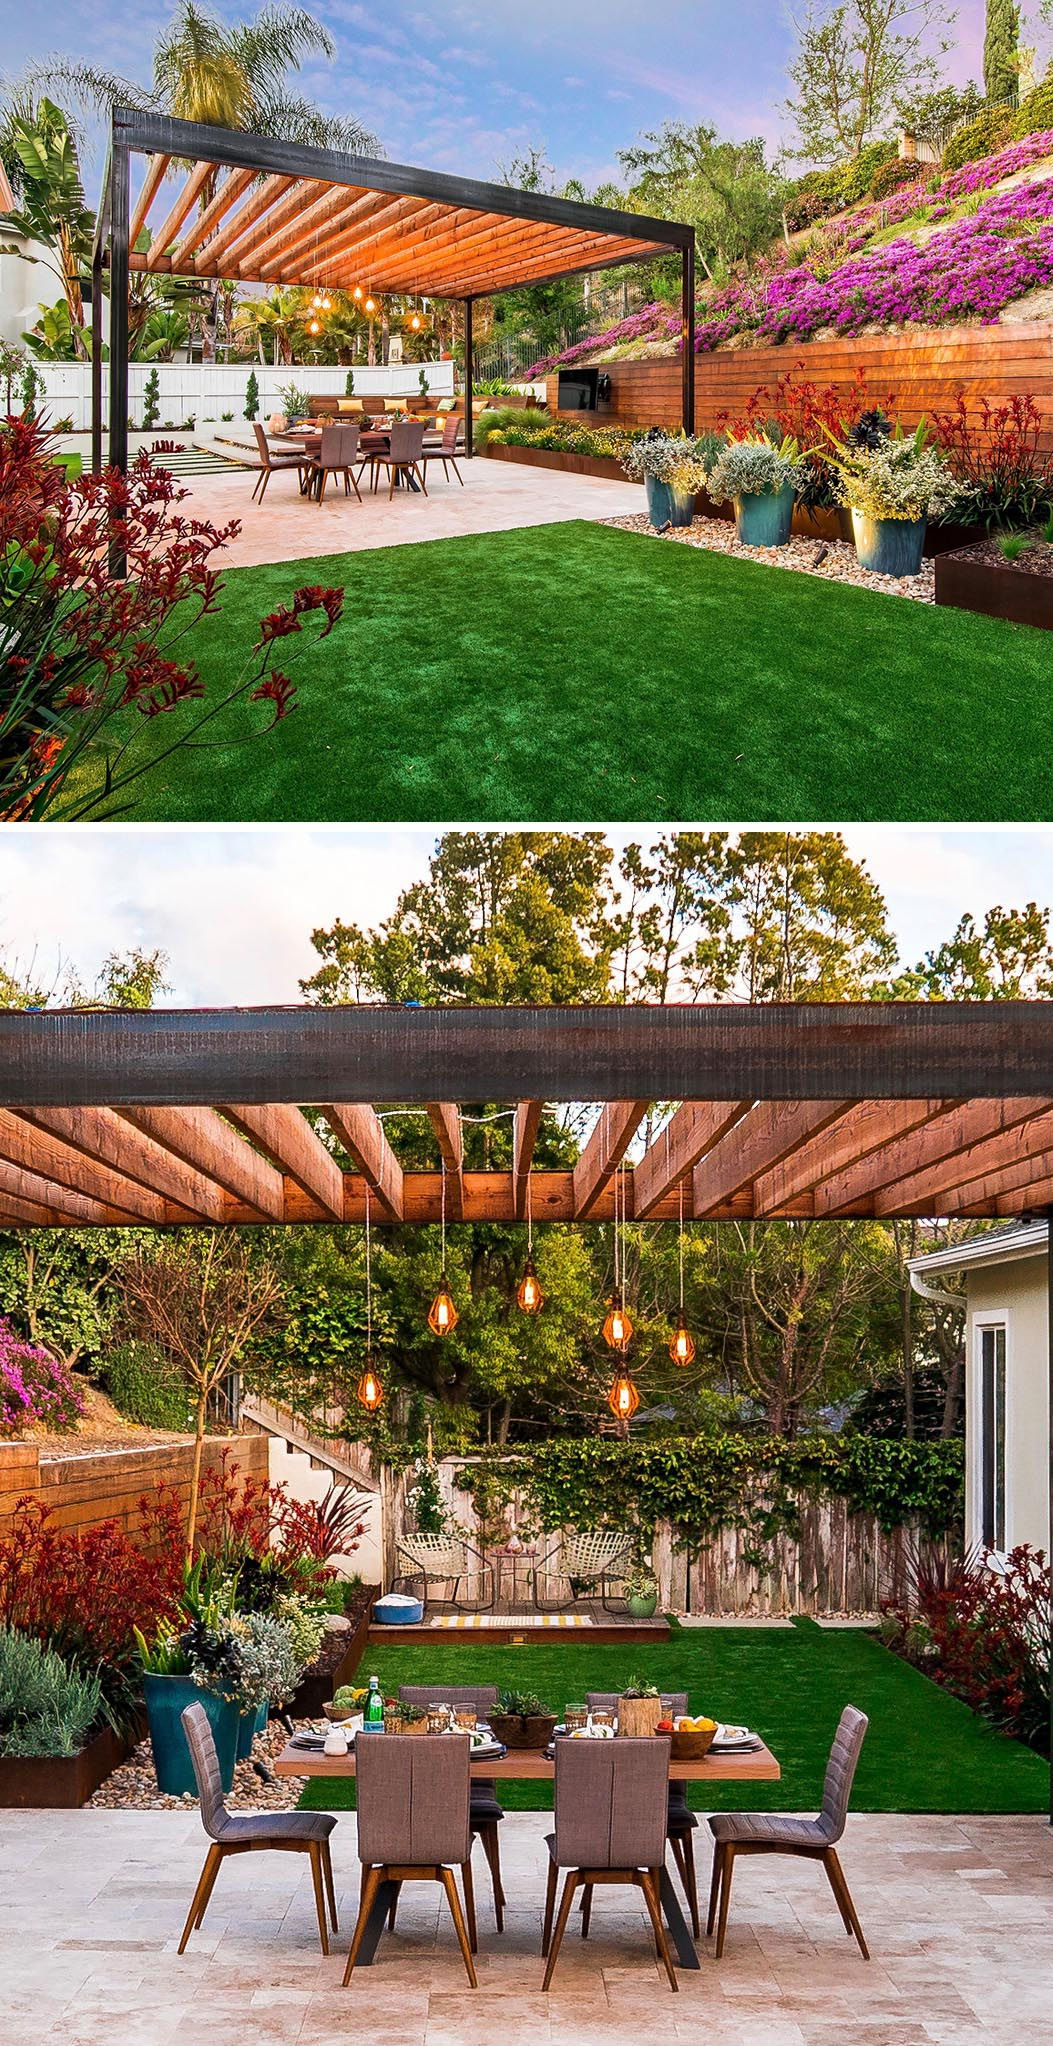 A modern yard with an alfresco dining area located underneath a steel and cedar wood pergola with travertine pavers.